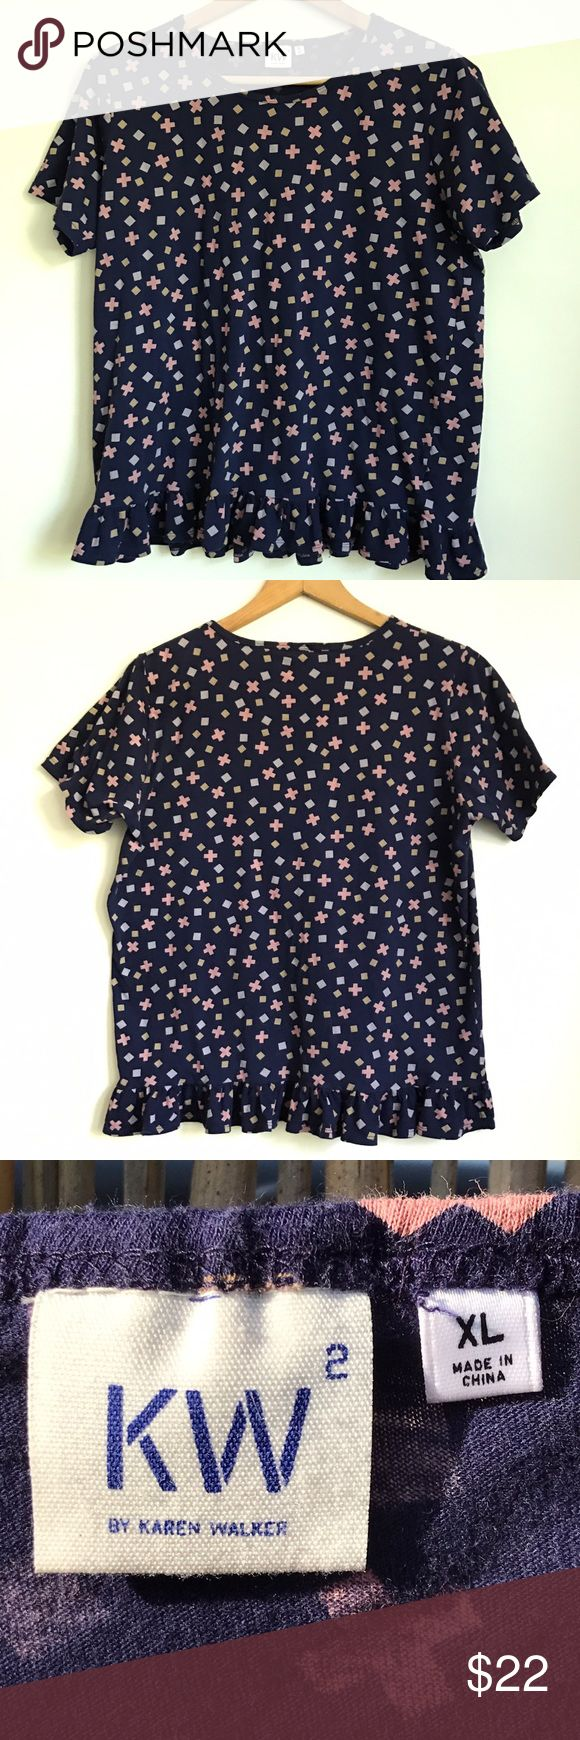 "UNIQLO x Karen Walker Limited Edition Top Worn and washed a few times.  Great condition, no stains, holes or piling. When laying flat measurements are approximately Armpit to armpit  21.5"" and Length 23.5""  2"" width ruffle on bottom Women's XL Uniqlo Tops Blouses"